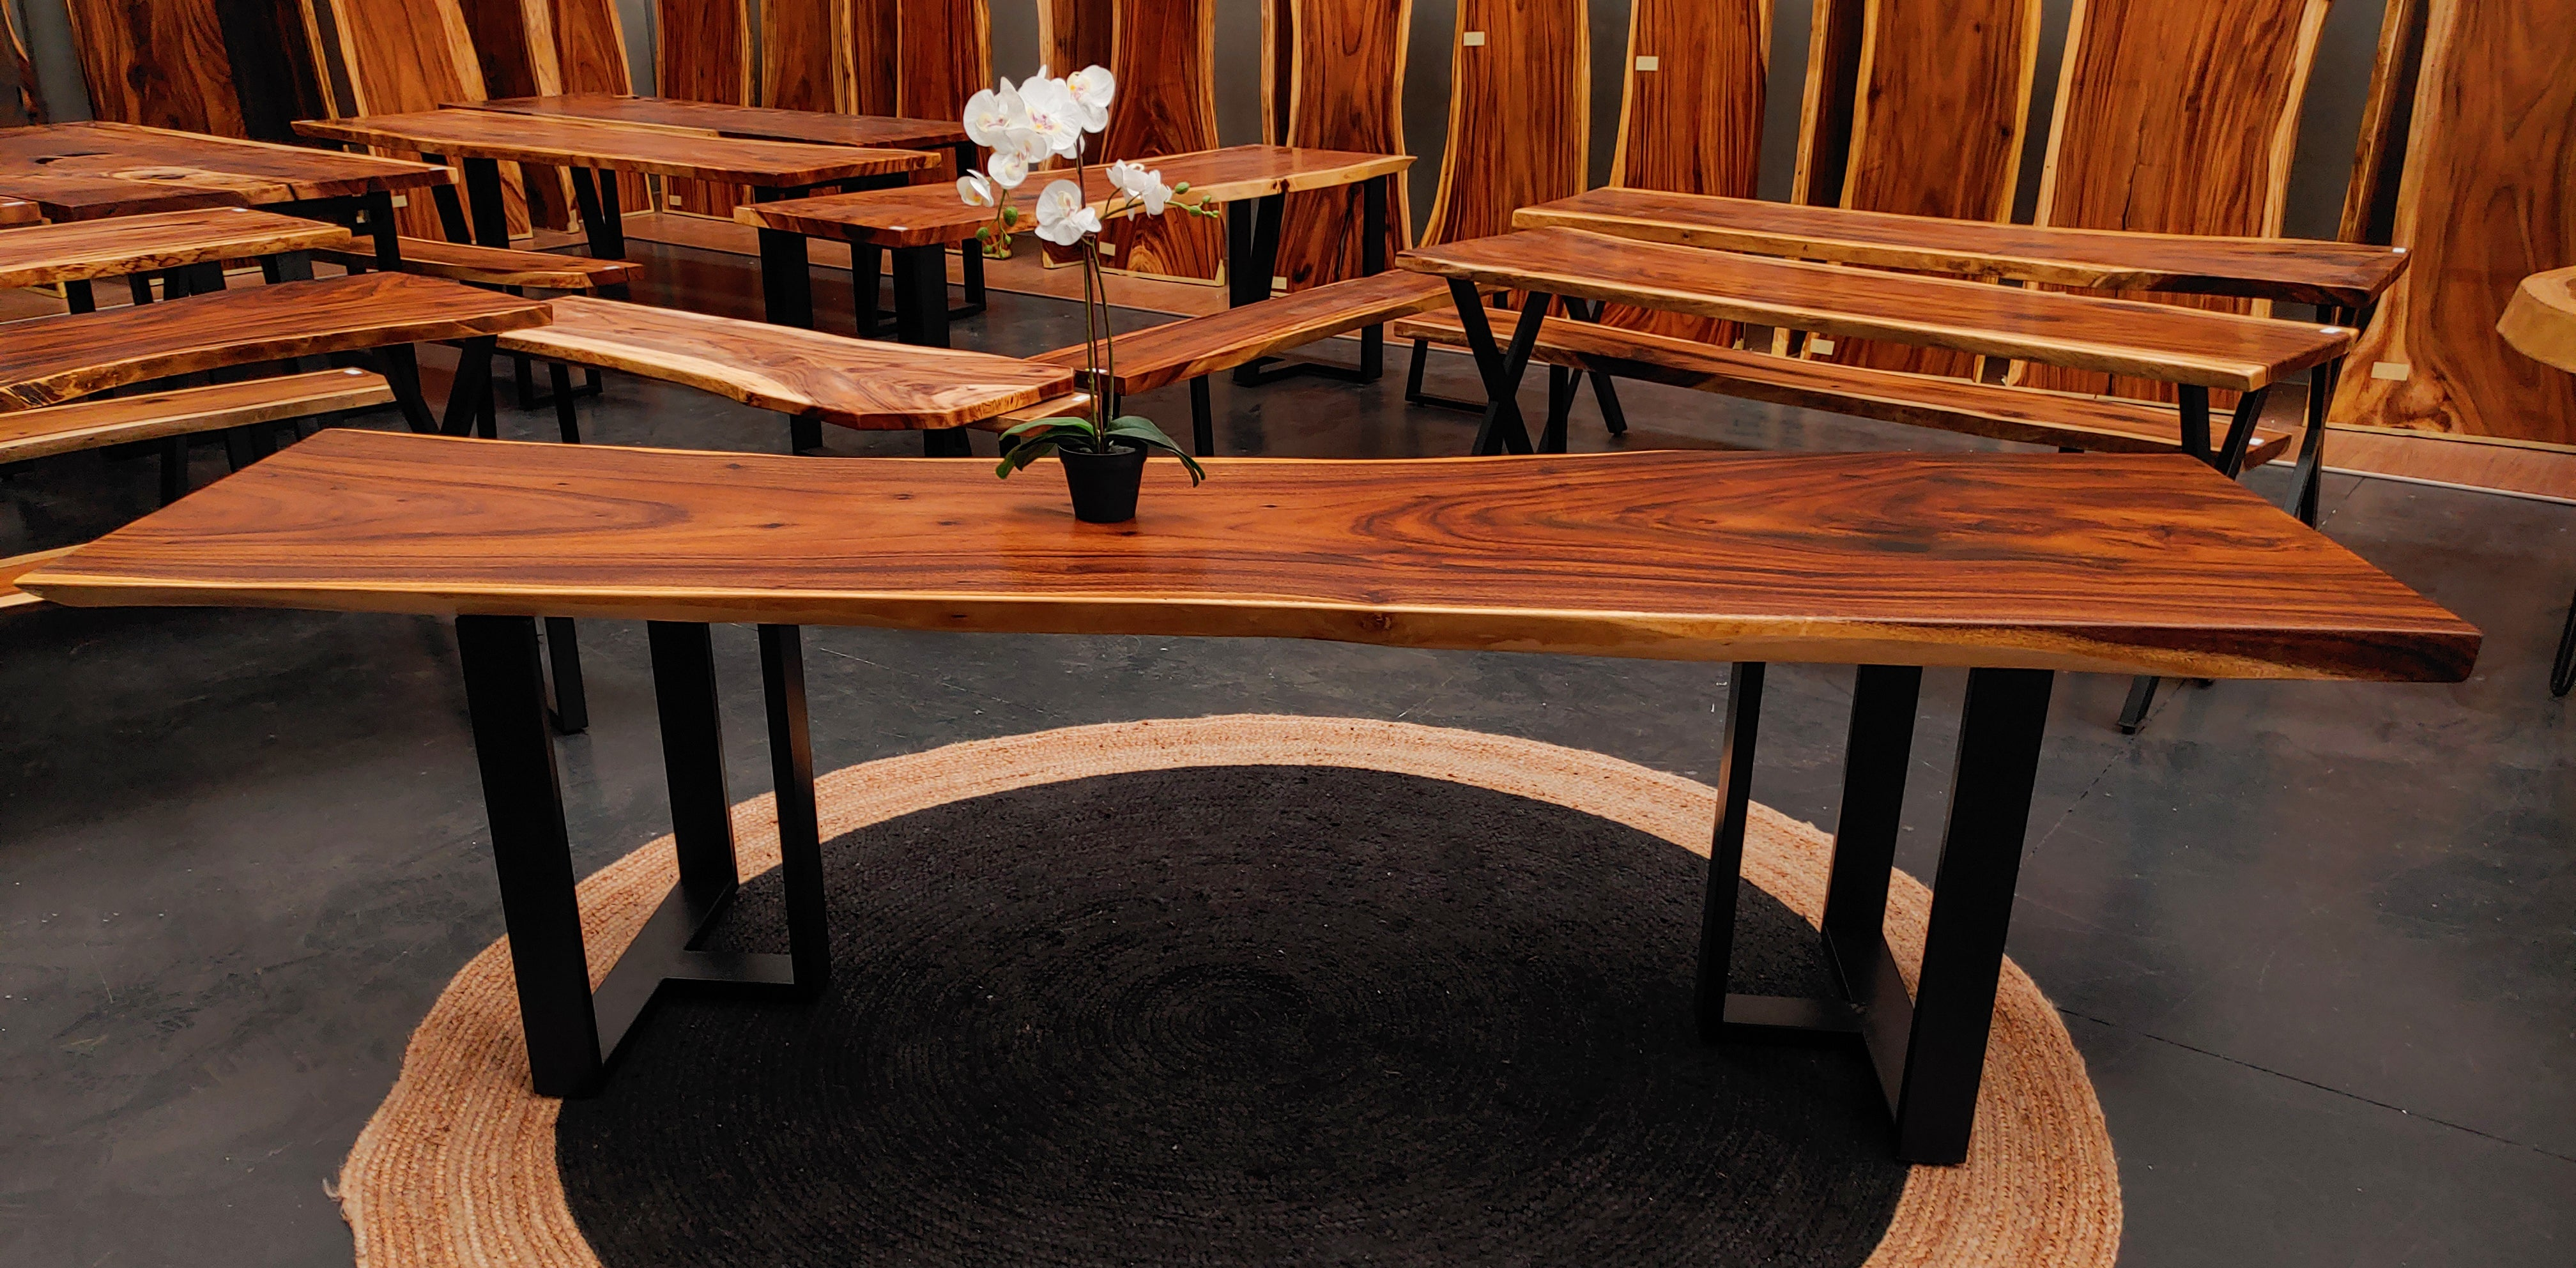 LAD020 - Monkeypod Edge Dining Table